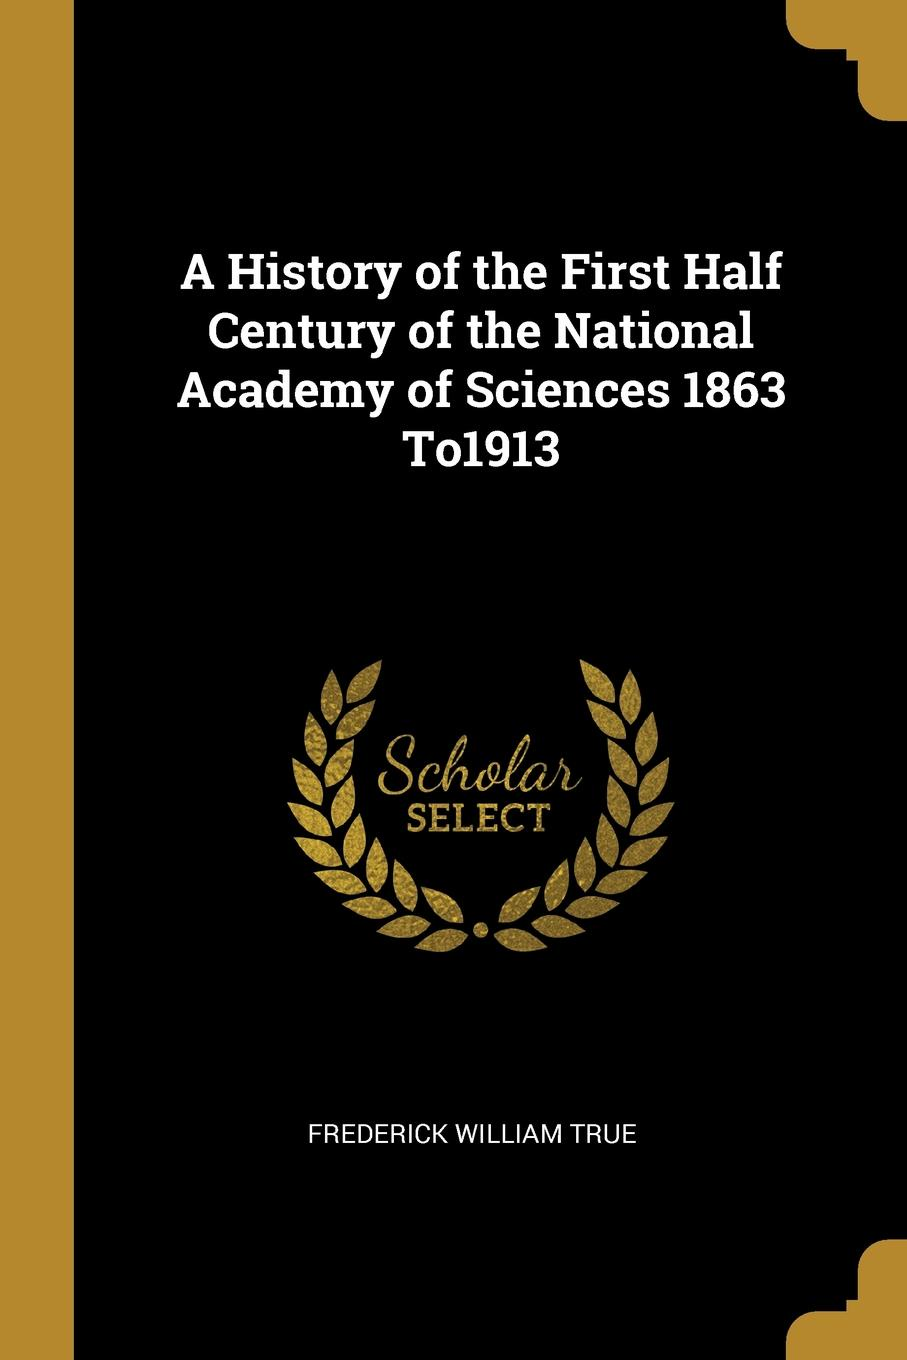 Frederick William True A History of the First Half Century of the National Academy of Sciences 1863 To1913